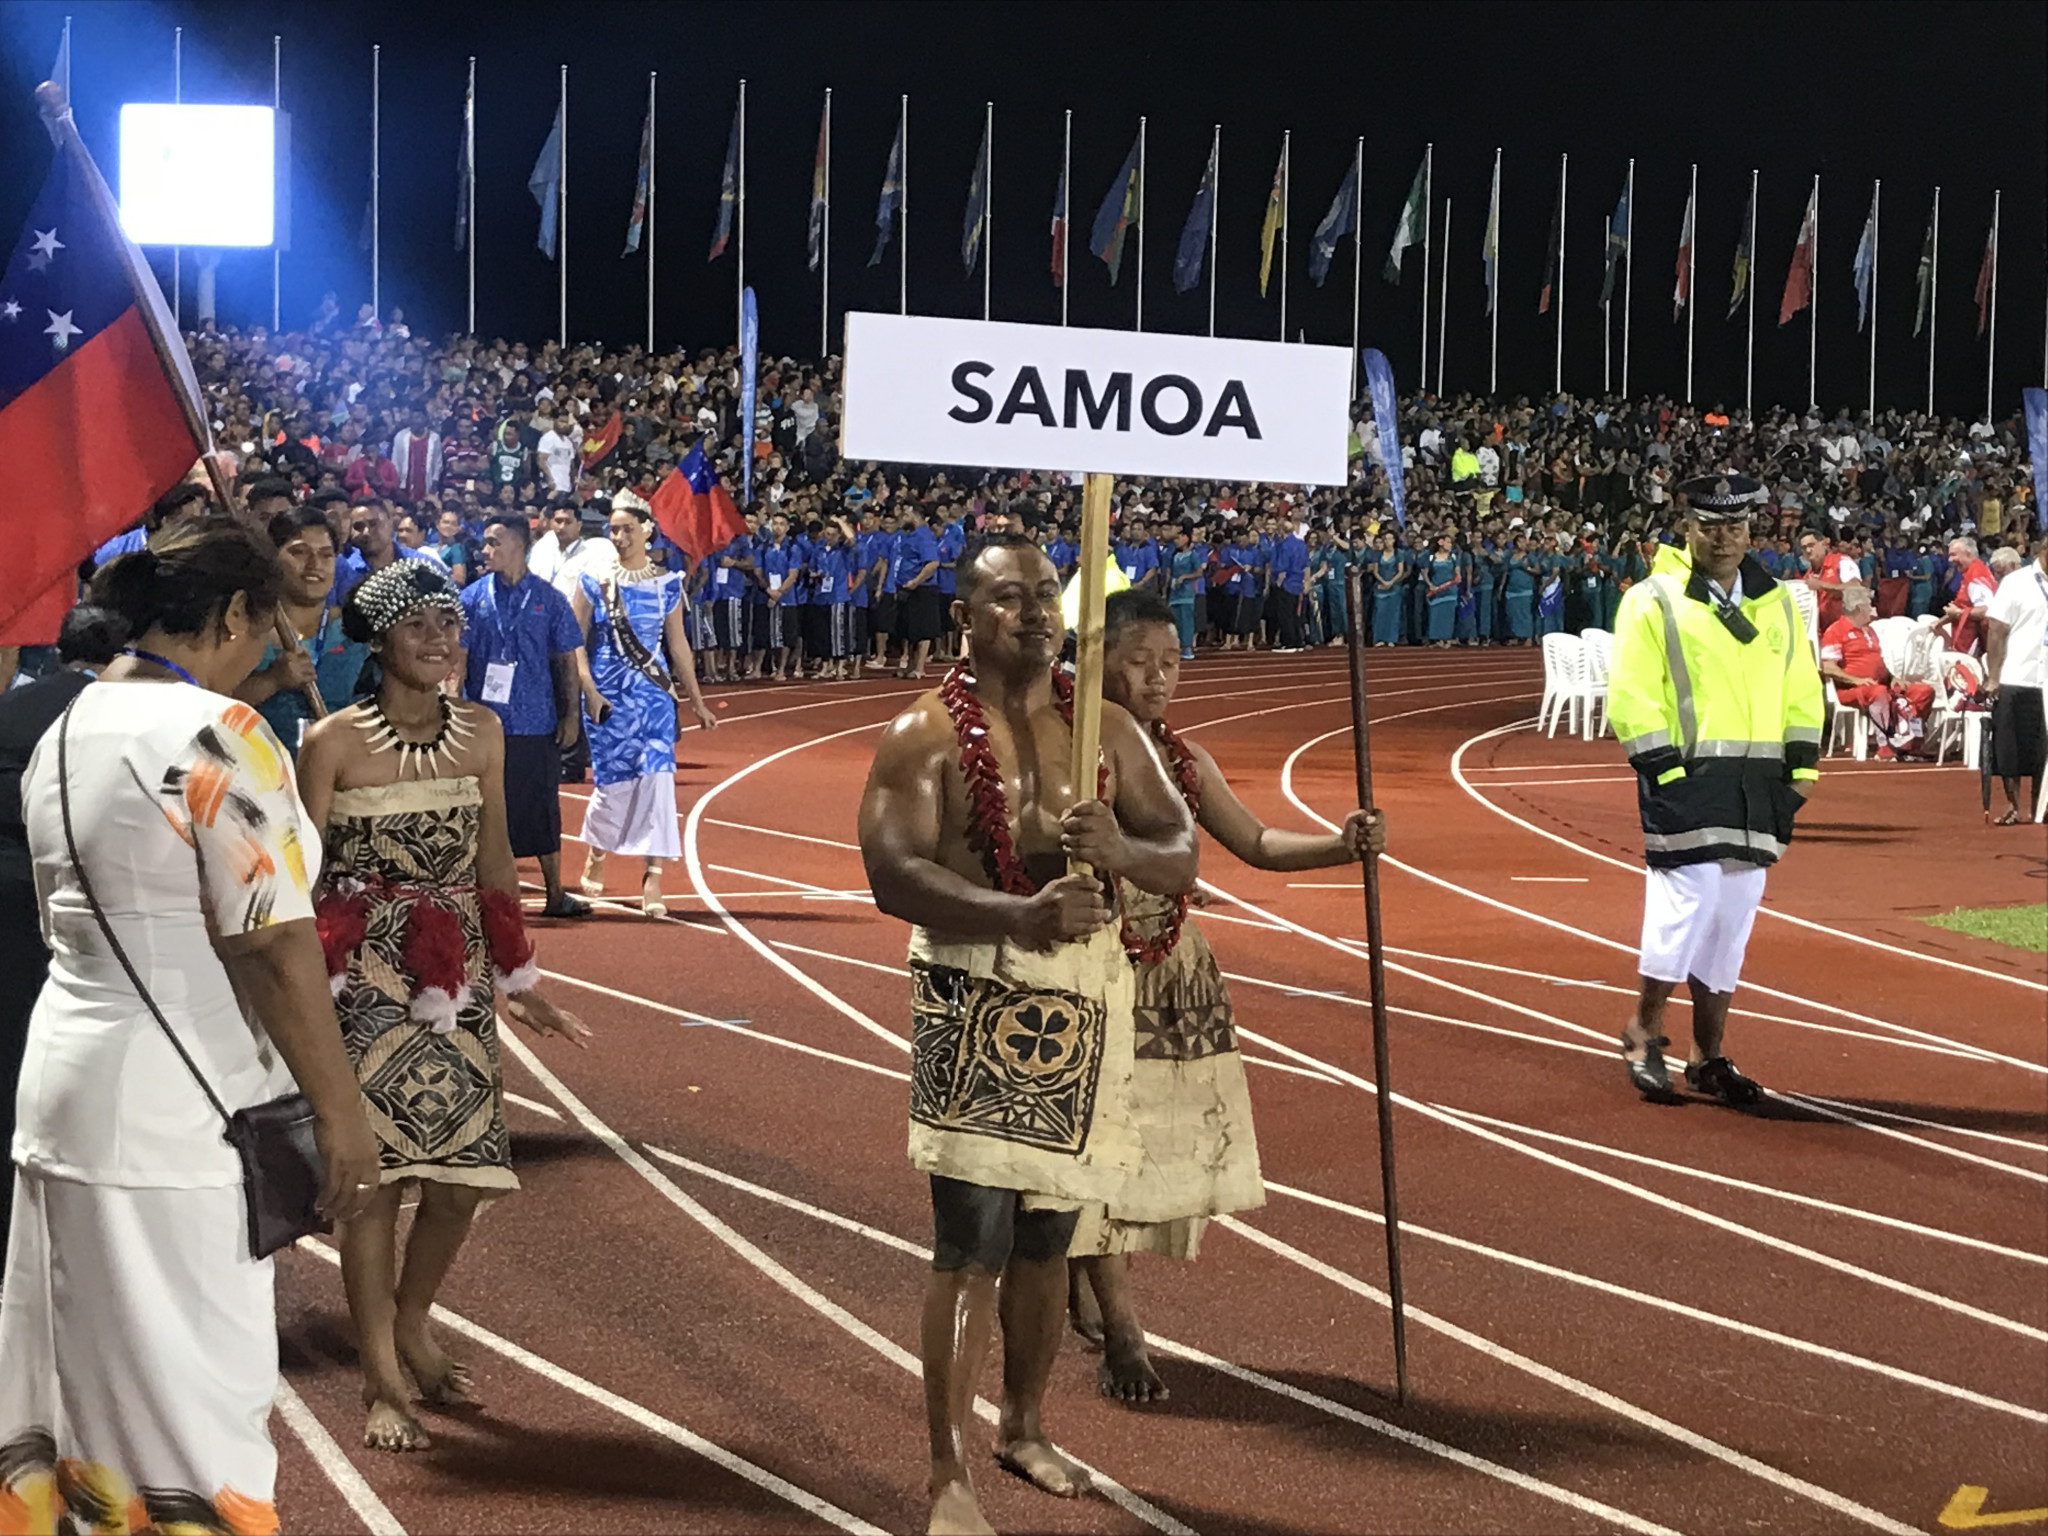 Samoa were the final nation to enter the stadium ©ITG